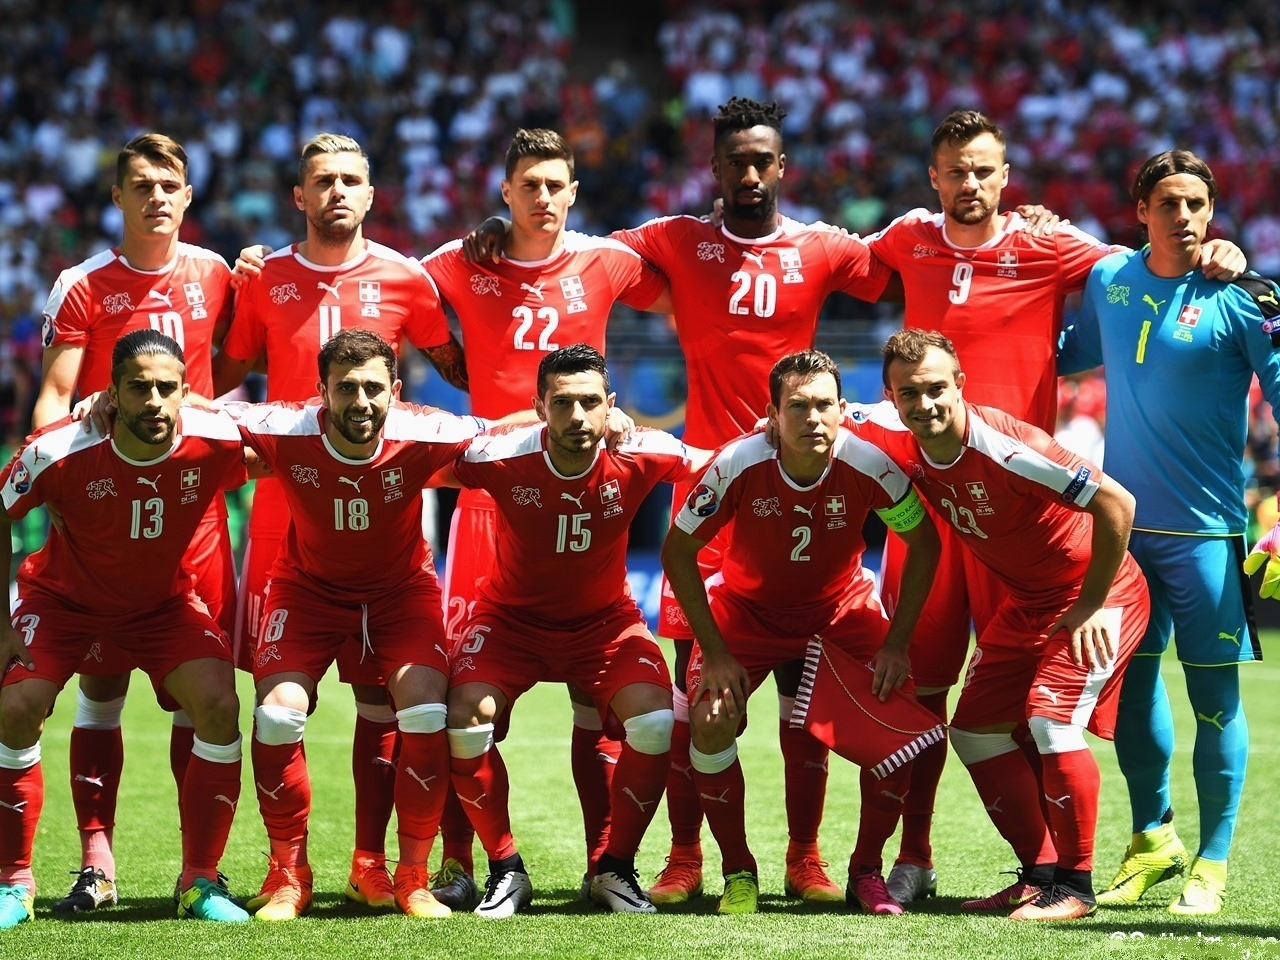 Switzerland-2016-PUMA-home-kit-red-red-red-line-up.jpg